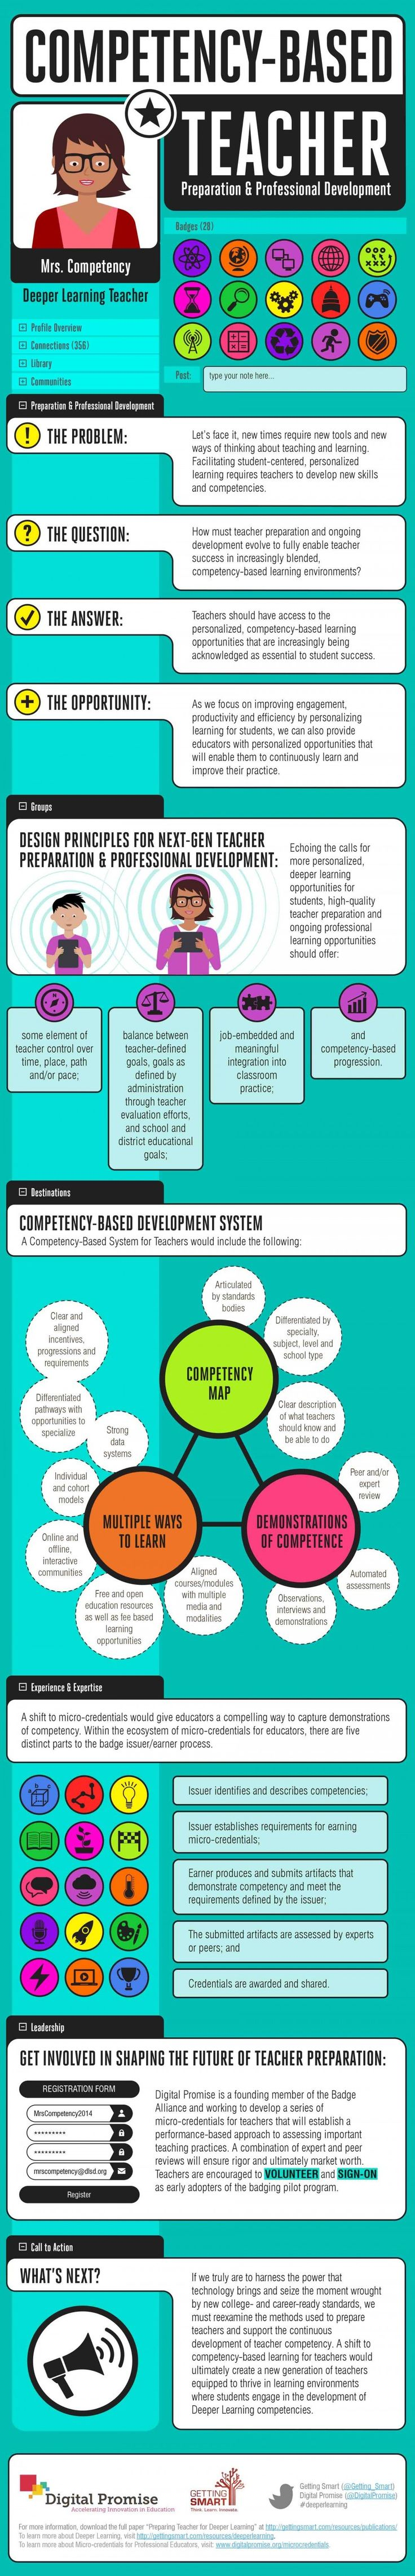 371 best competency based education systems and personalized